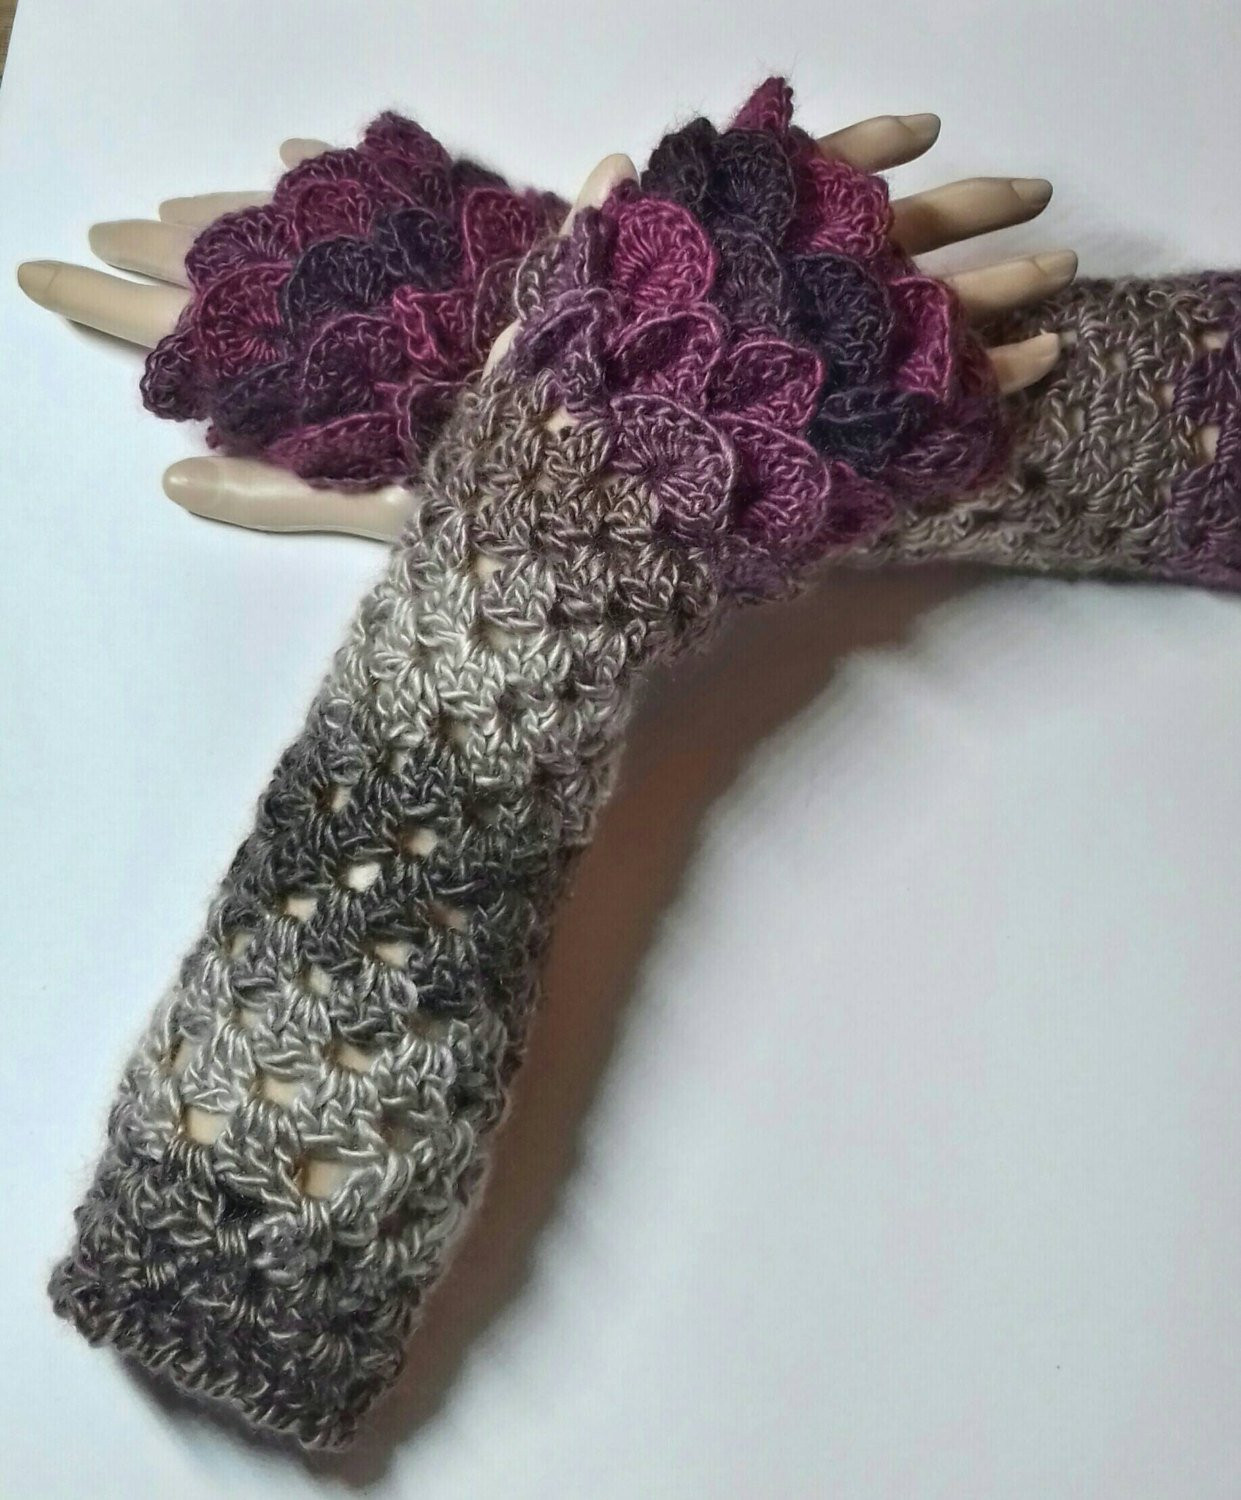 Dragon Scale Crochet Gloves Lovely Dragon Scale Ombre Glovesmermaid Cuffsdragon Gloves Of Dragon Scale Crochet Gloves Inspirational Dragon Scale Crocheted Gloves